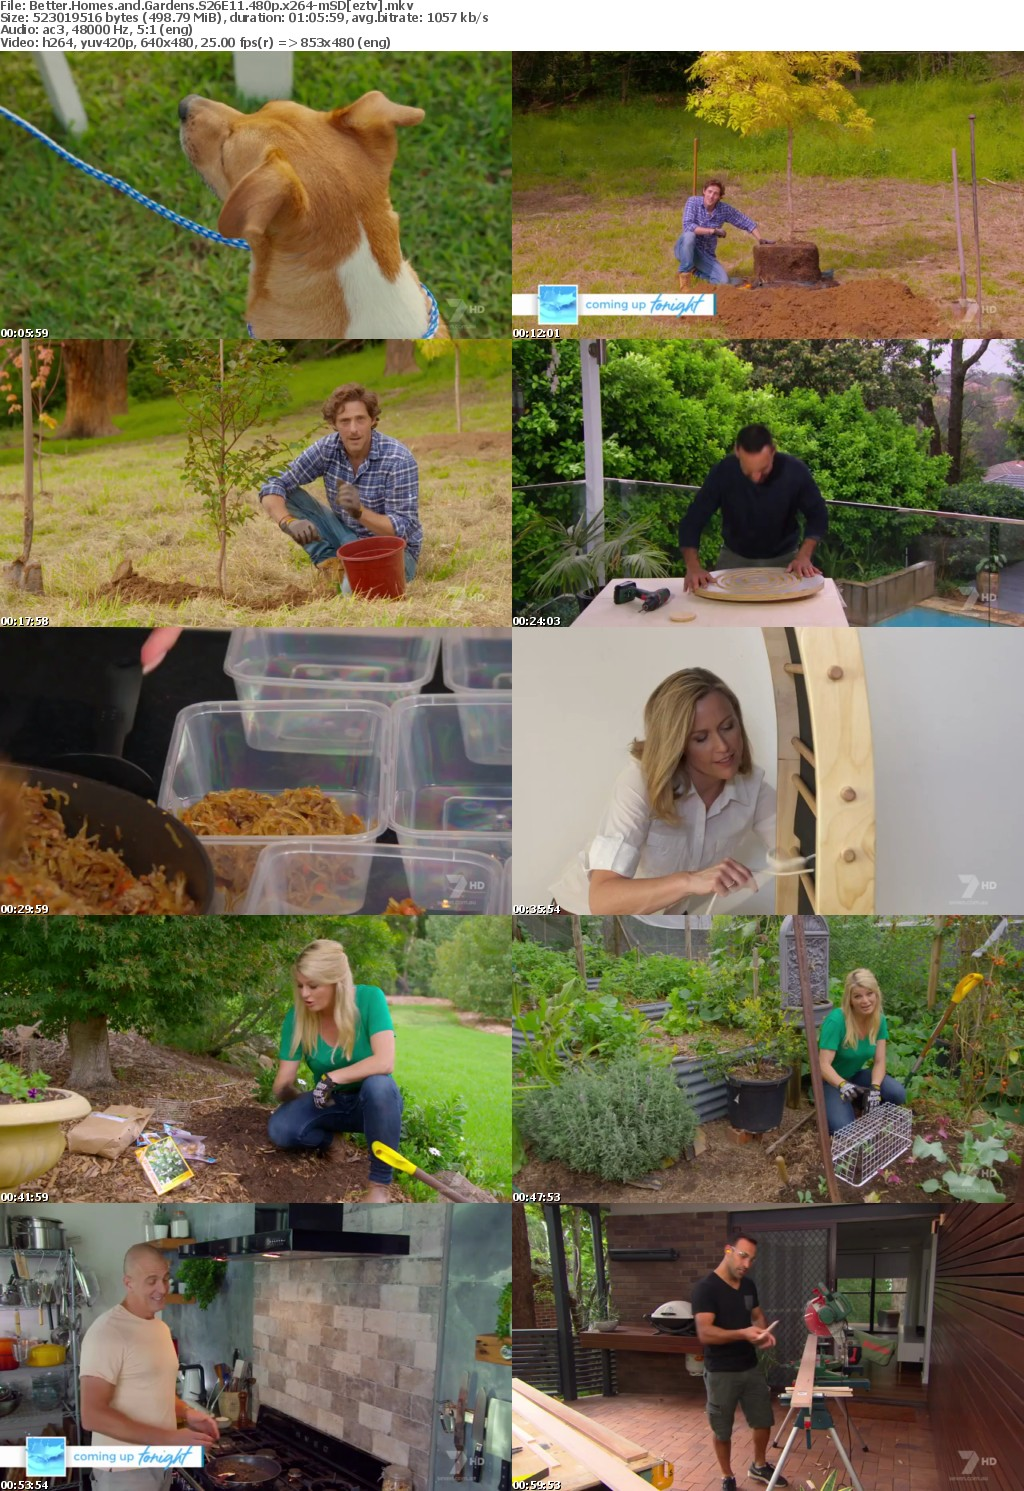 Better Homes and Gardens S26E11 480p x264-mSD